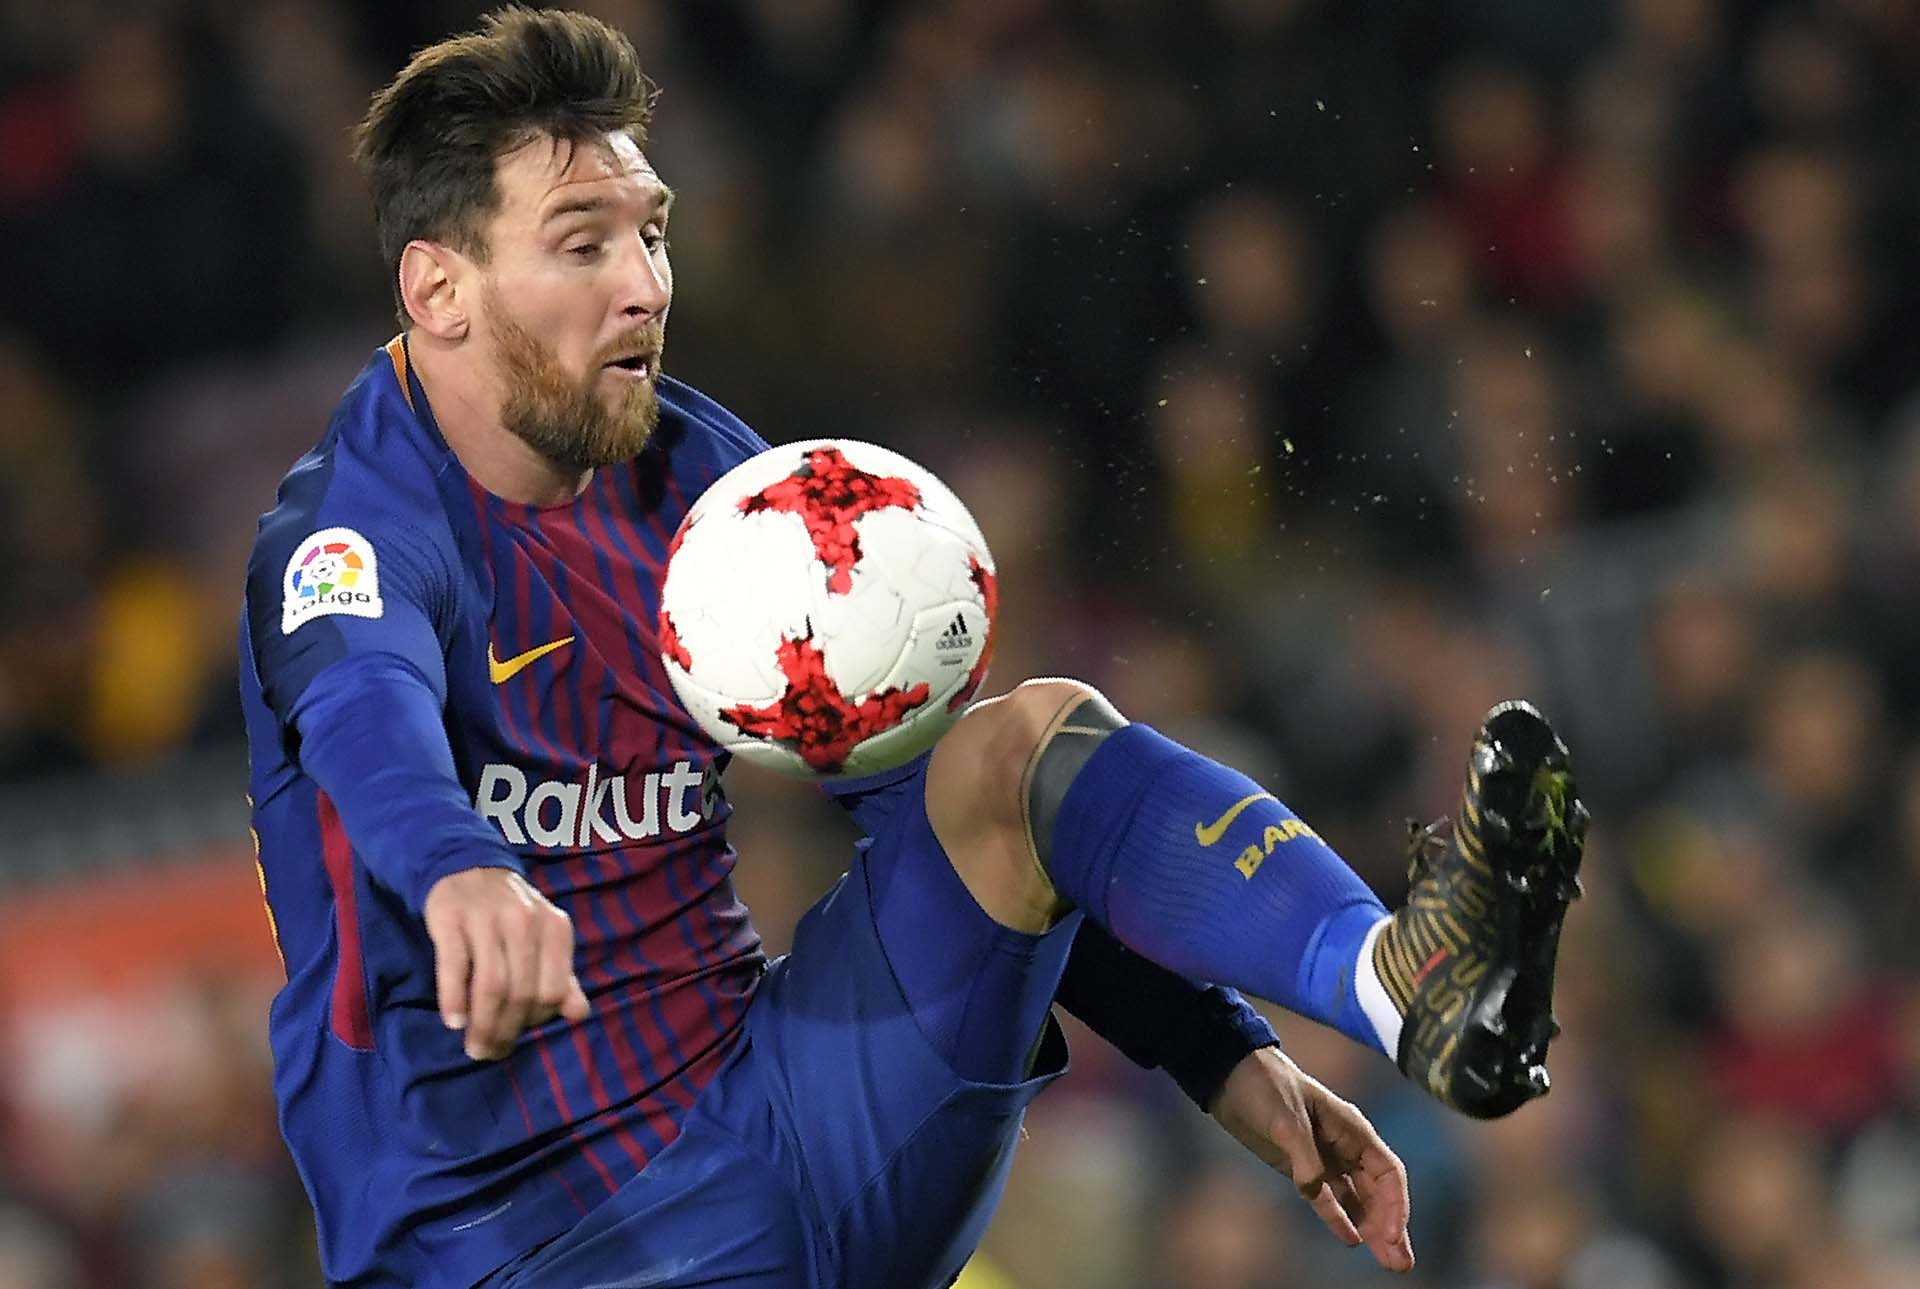 FC Barcelona confirms that Lionel Messi will not return to La Liga club due to league regulations